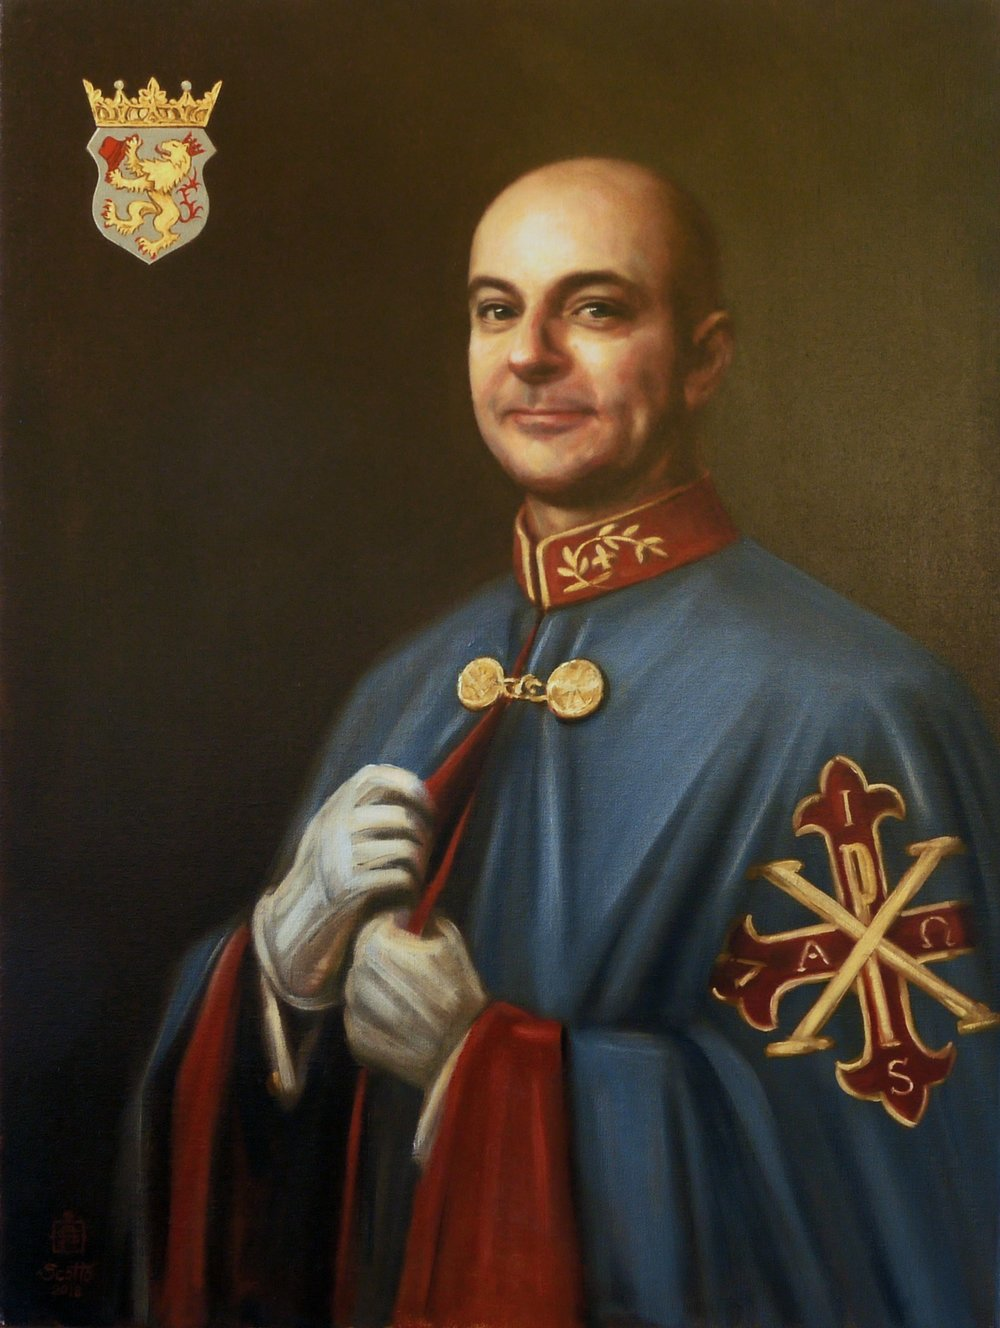 Marco Foppoli, Knight Iure Sanguinis Sac. Mil. Constatinian Order of St George